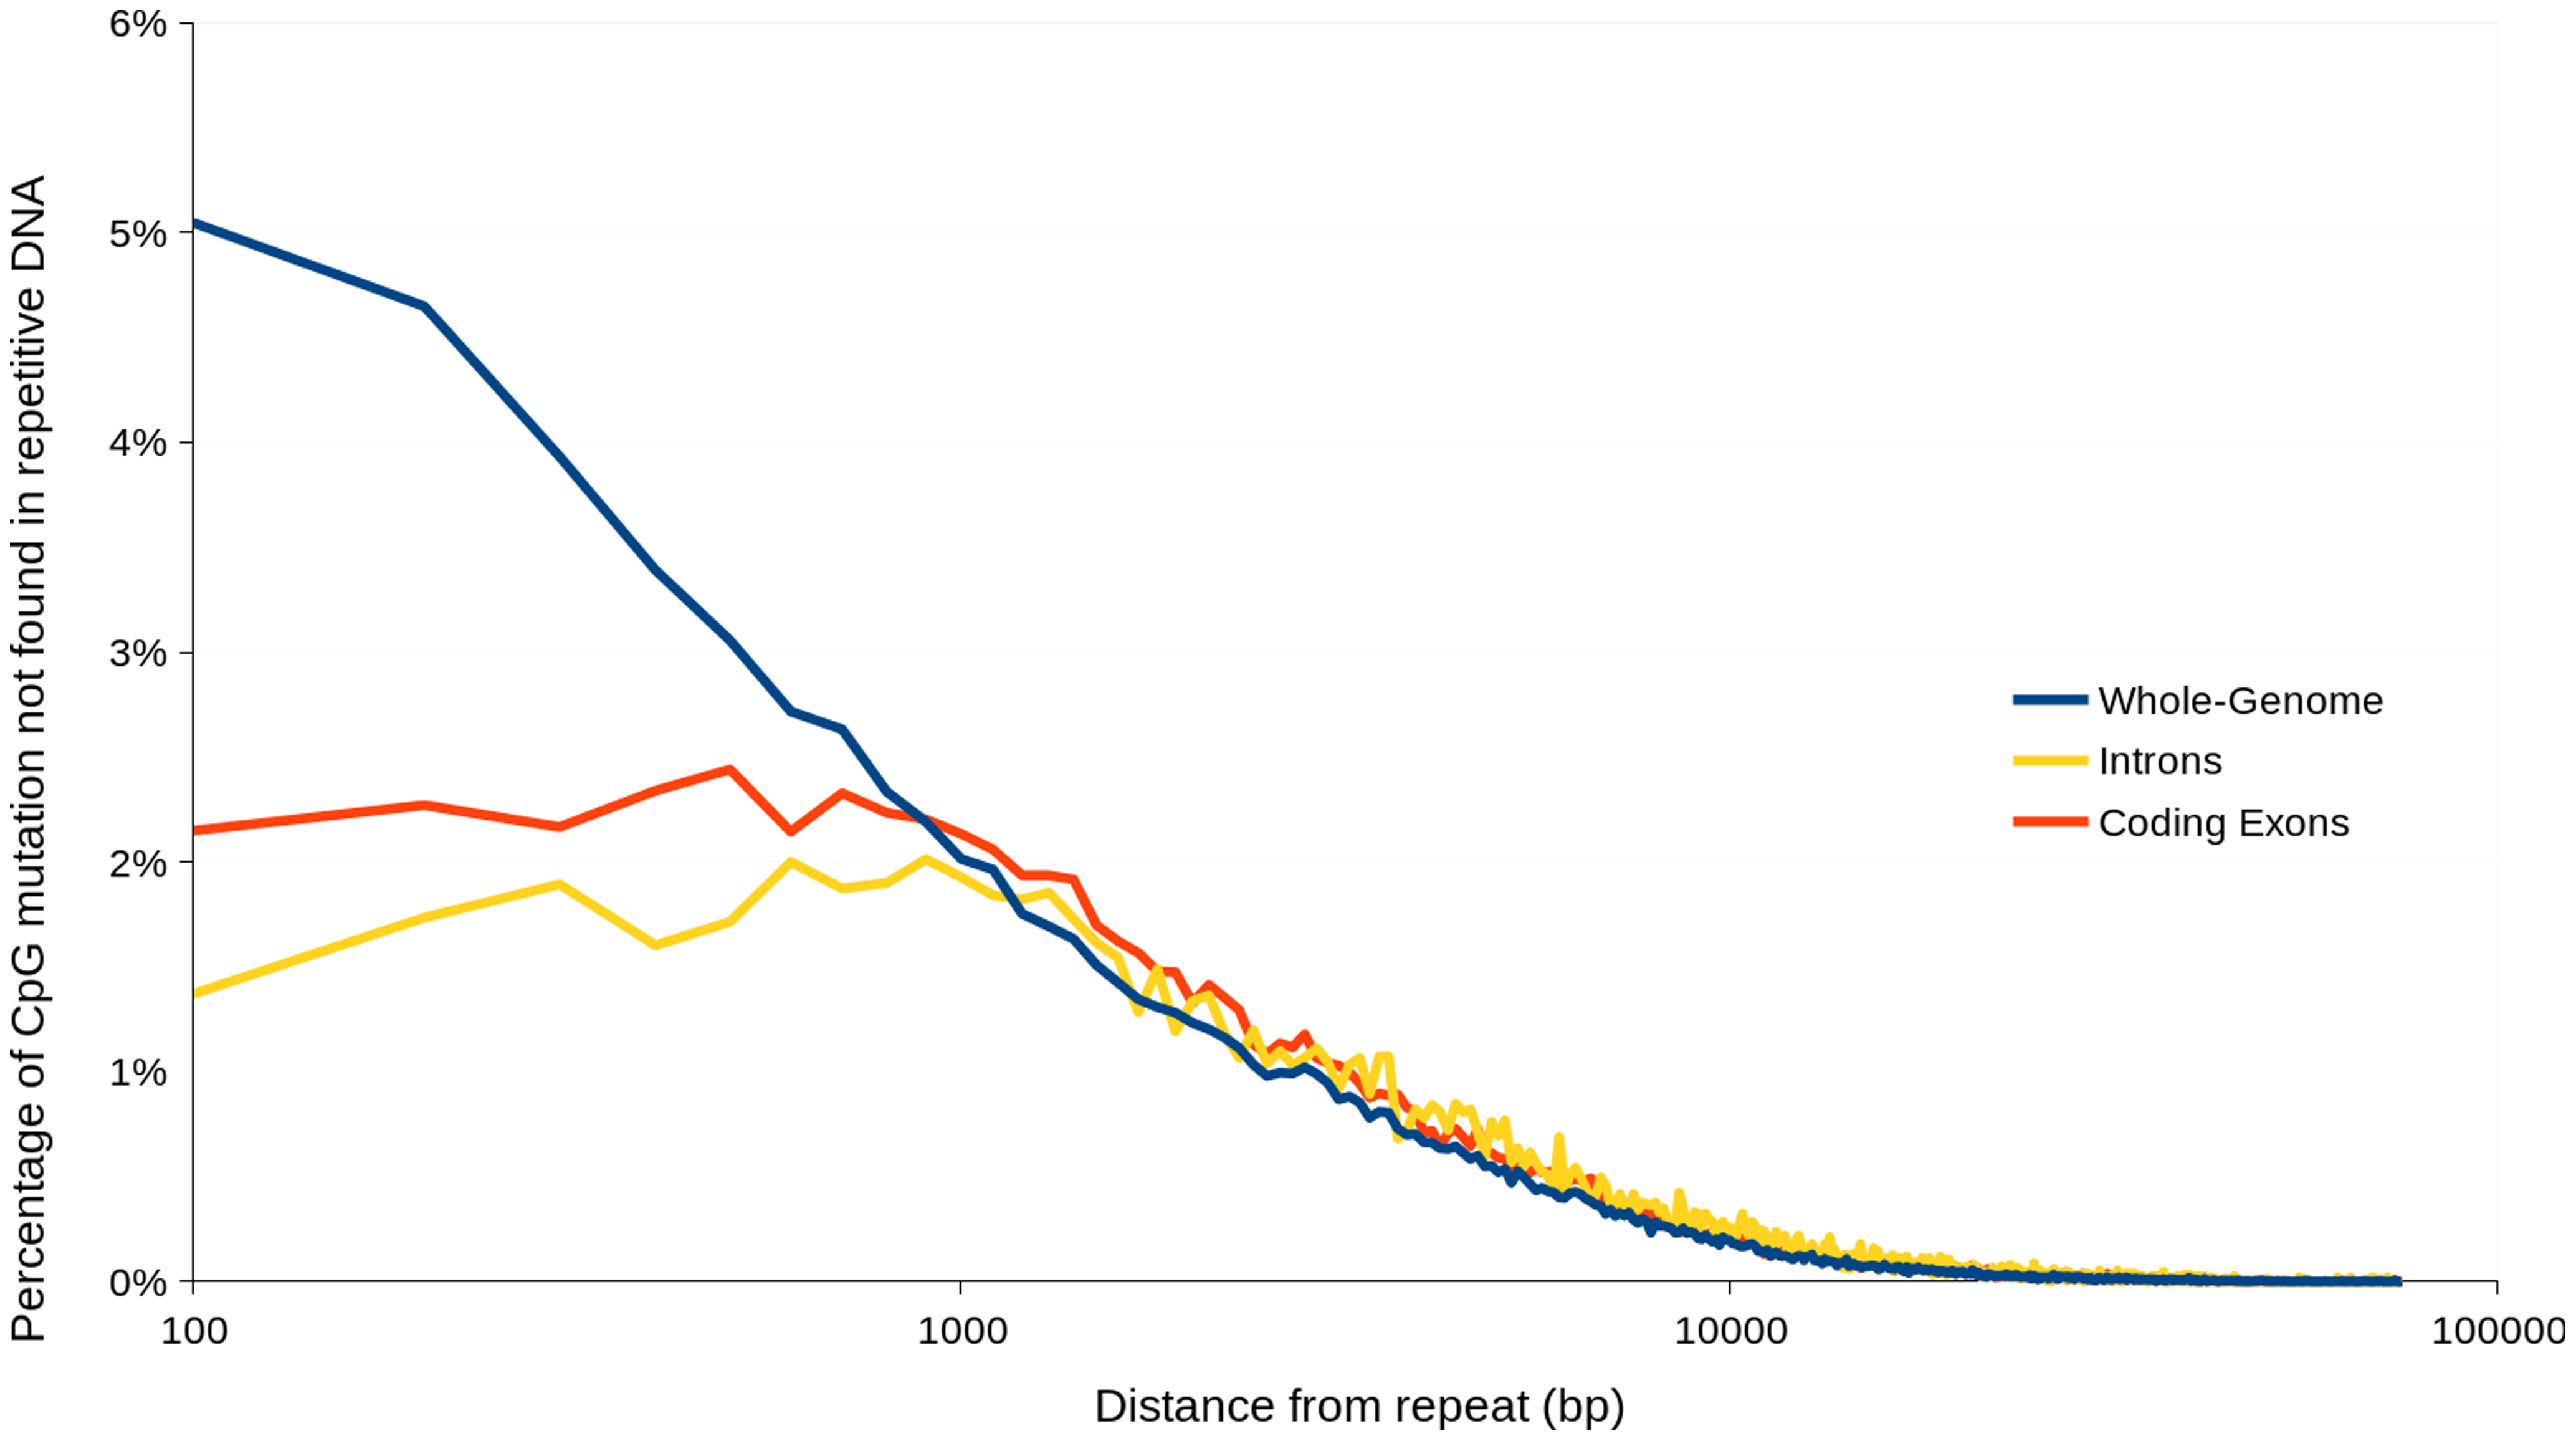 Percentage of heterozygous CpG↔TpG mutations not occurring in repetitive DNA versus distance from nearest repetitive DNA region.